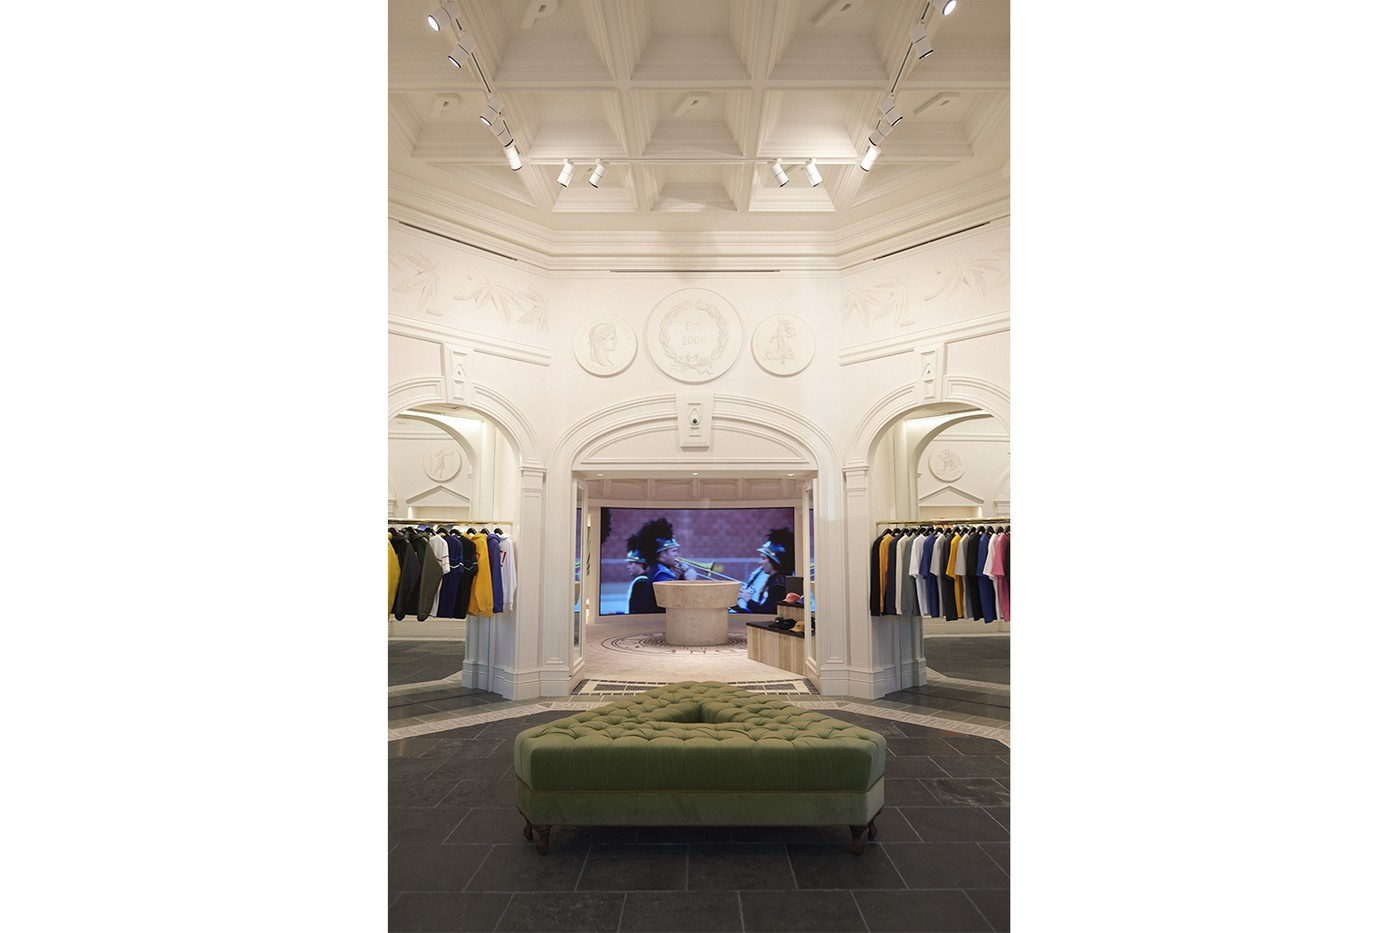 https---hypebeast.com-image-2019-04-palace-los-angeles-flagship-inside-look-04.jpg